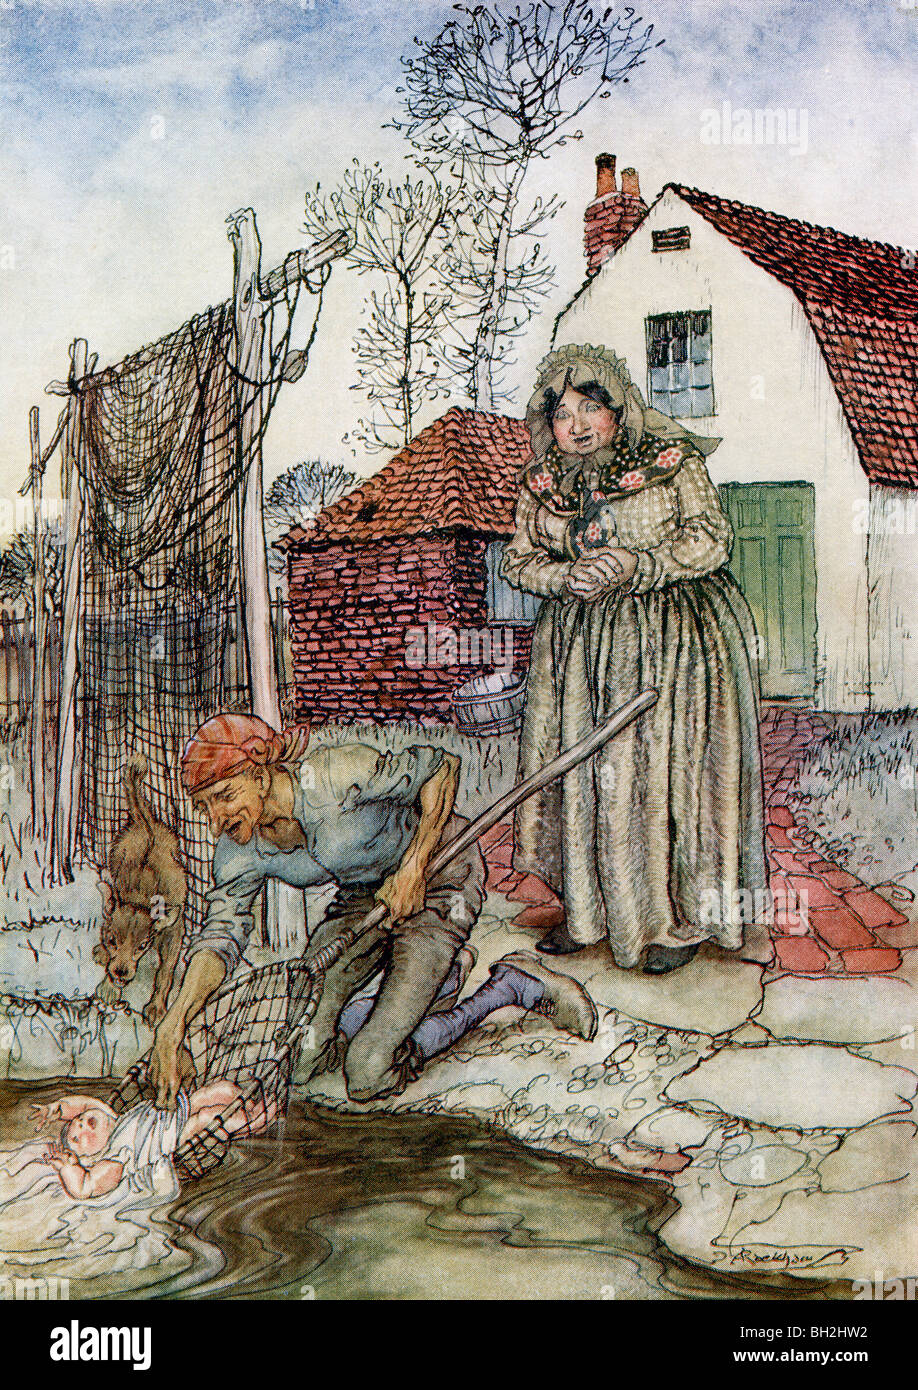 The Fish and the Ring. From the book English Fairy Tales retold by F.A. Steel with illustrations by Arthur Rackham Stock Photo